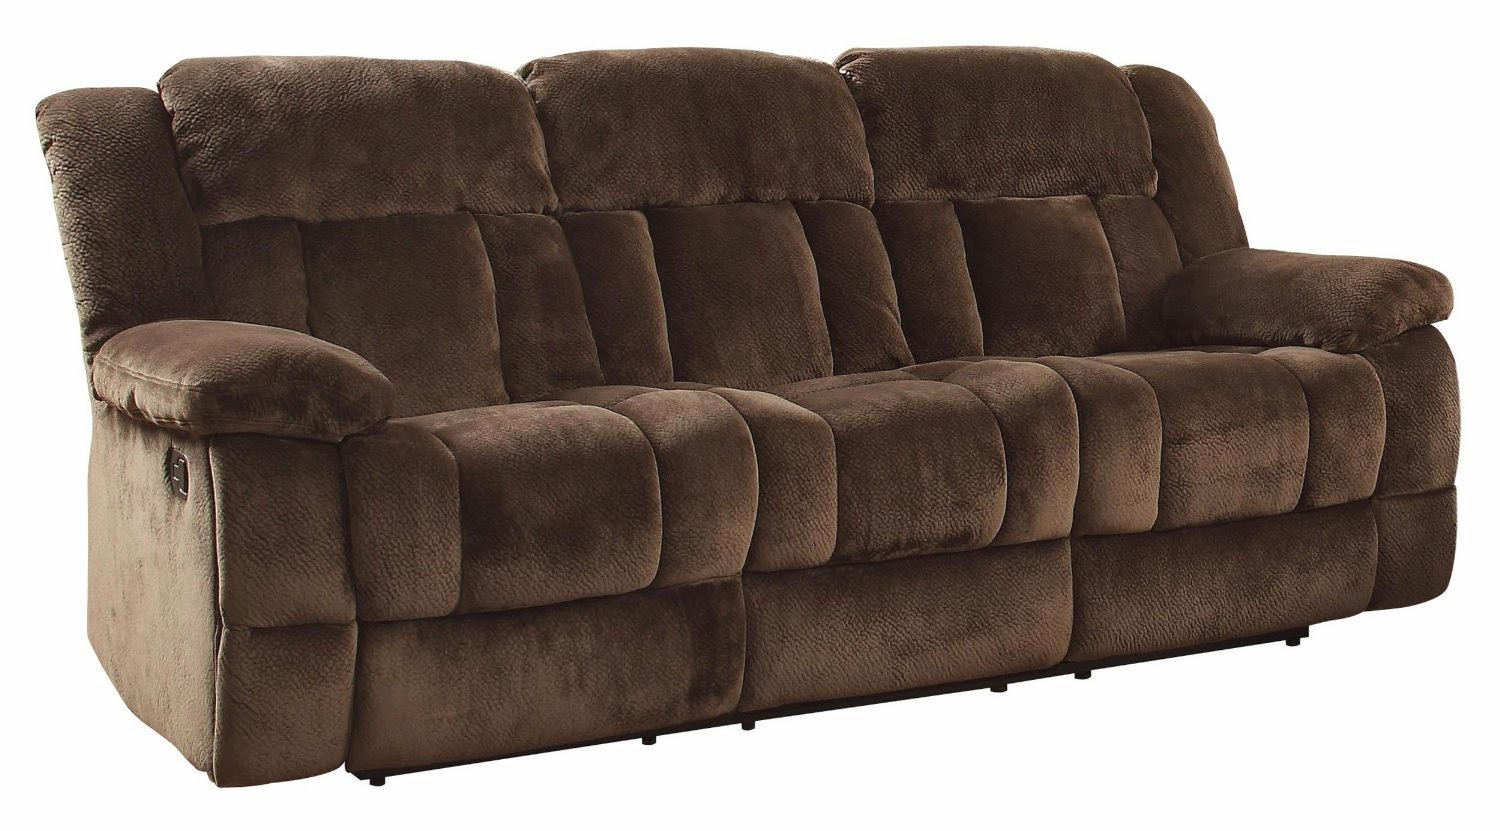 Cheap reclining sofas sale fabric recliner sofas sale Reclining loveseat sale